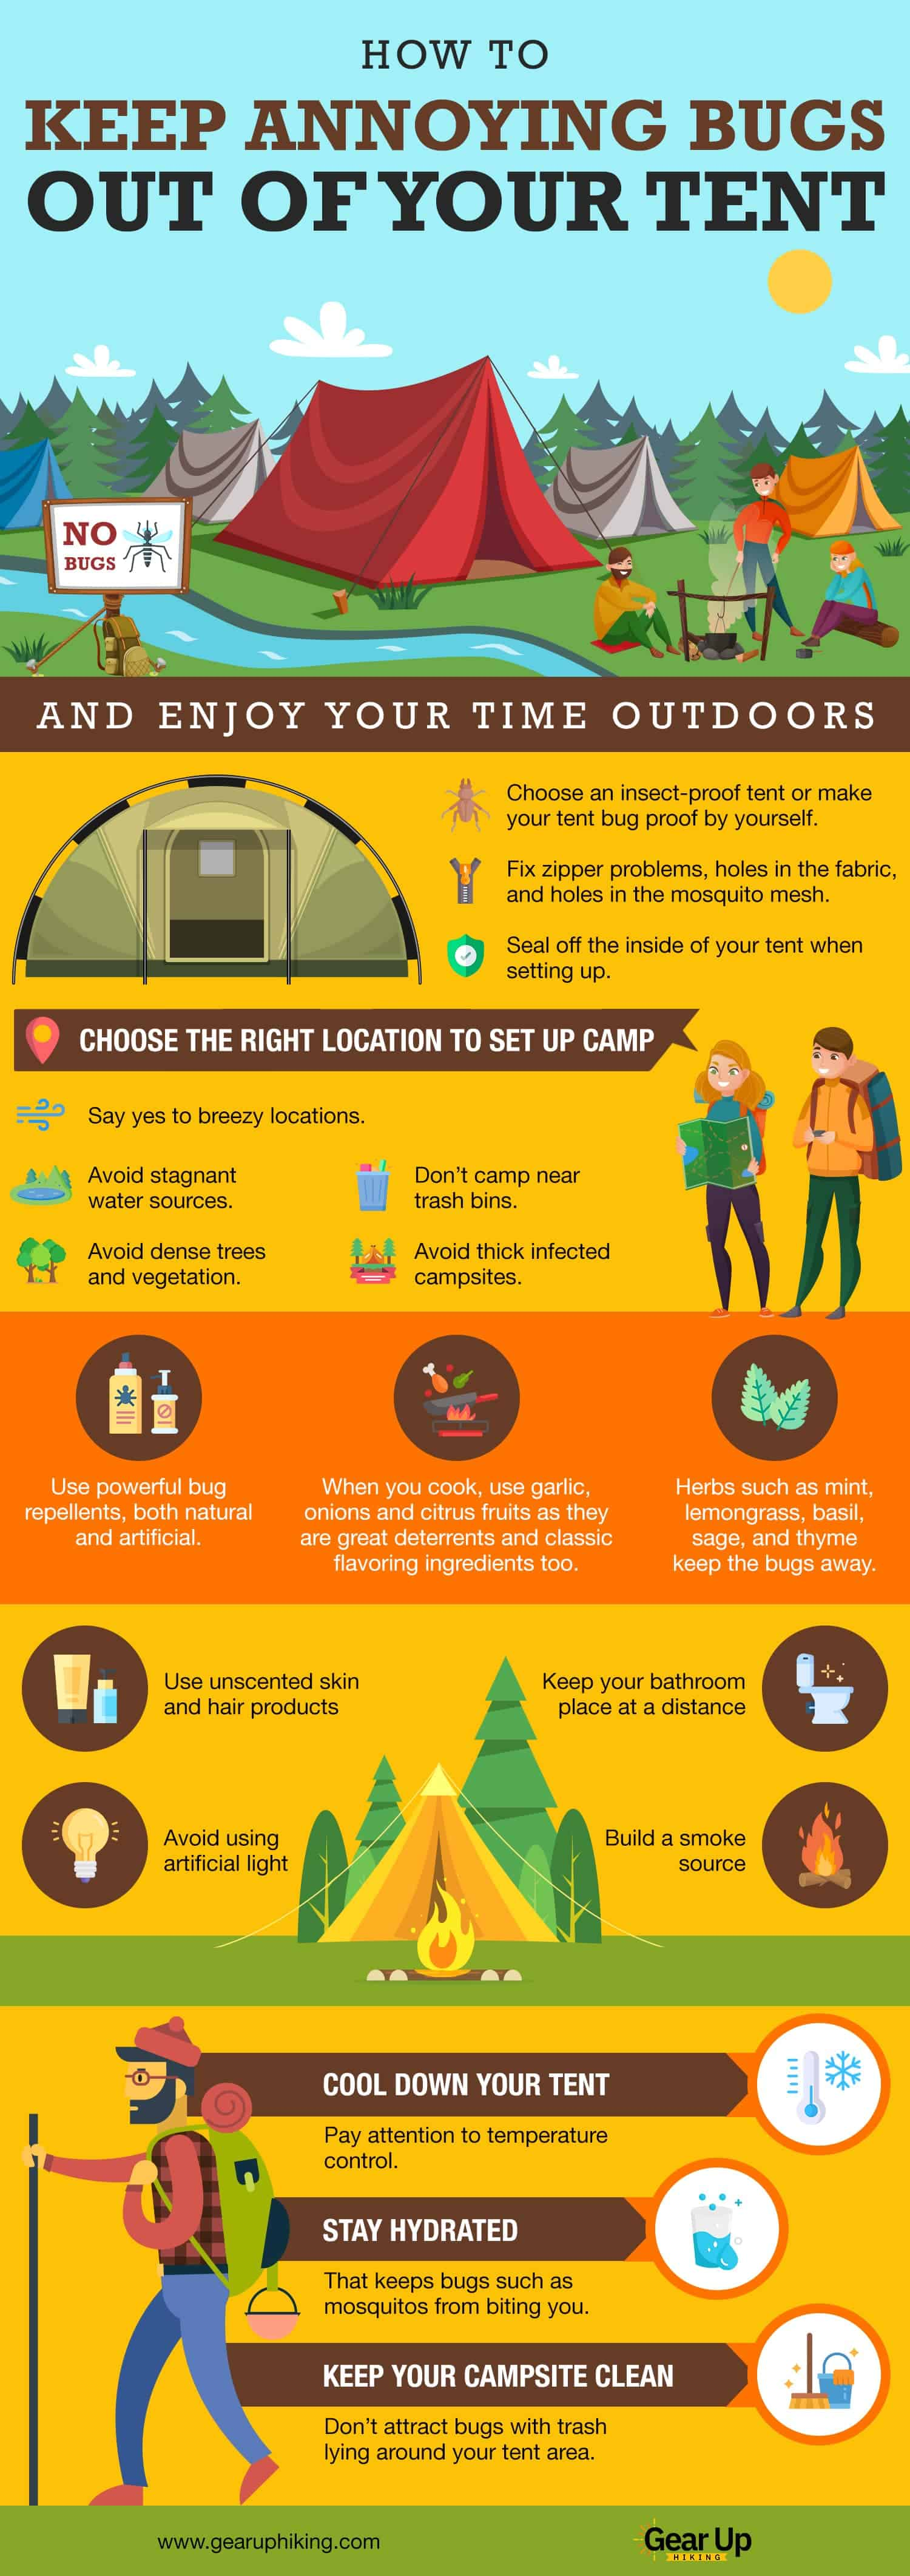 Keep Annoying Bugs Out Of Your Tent